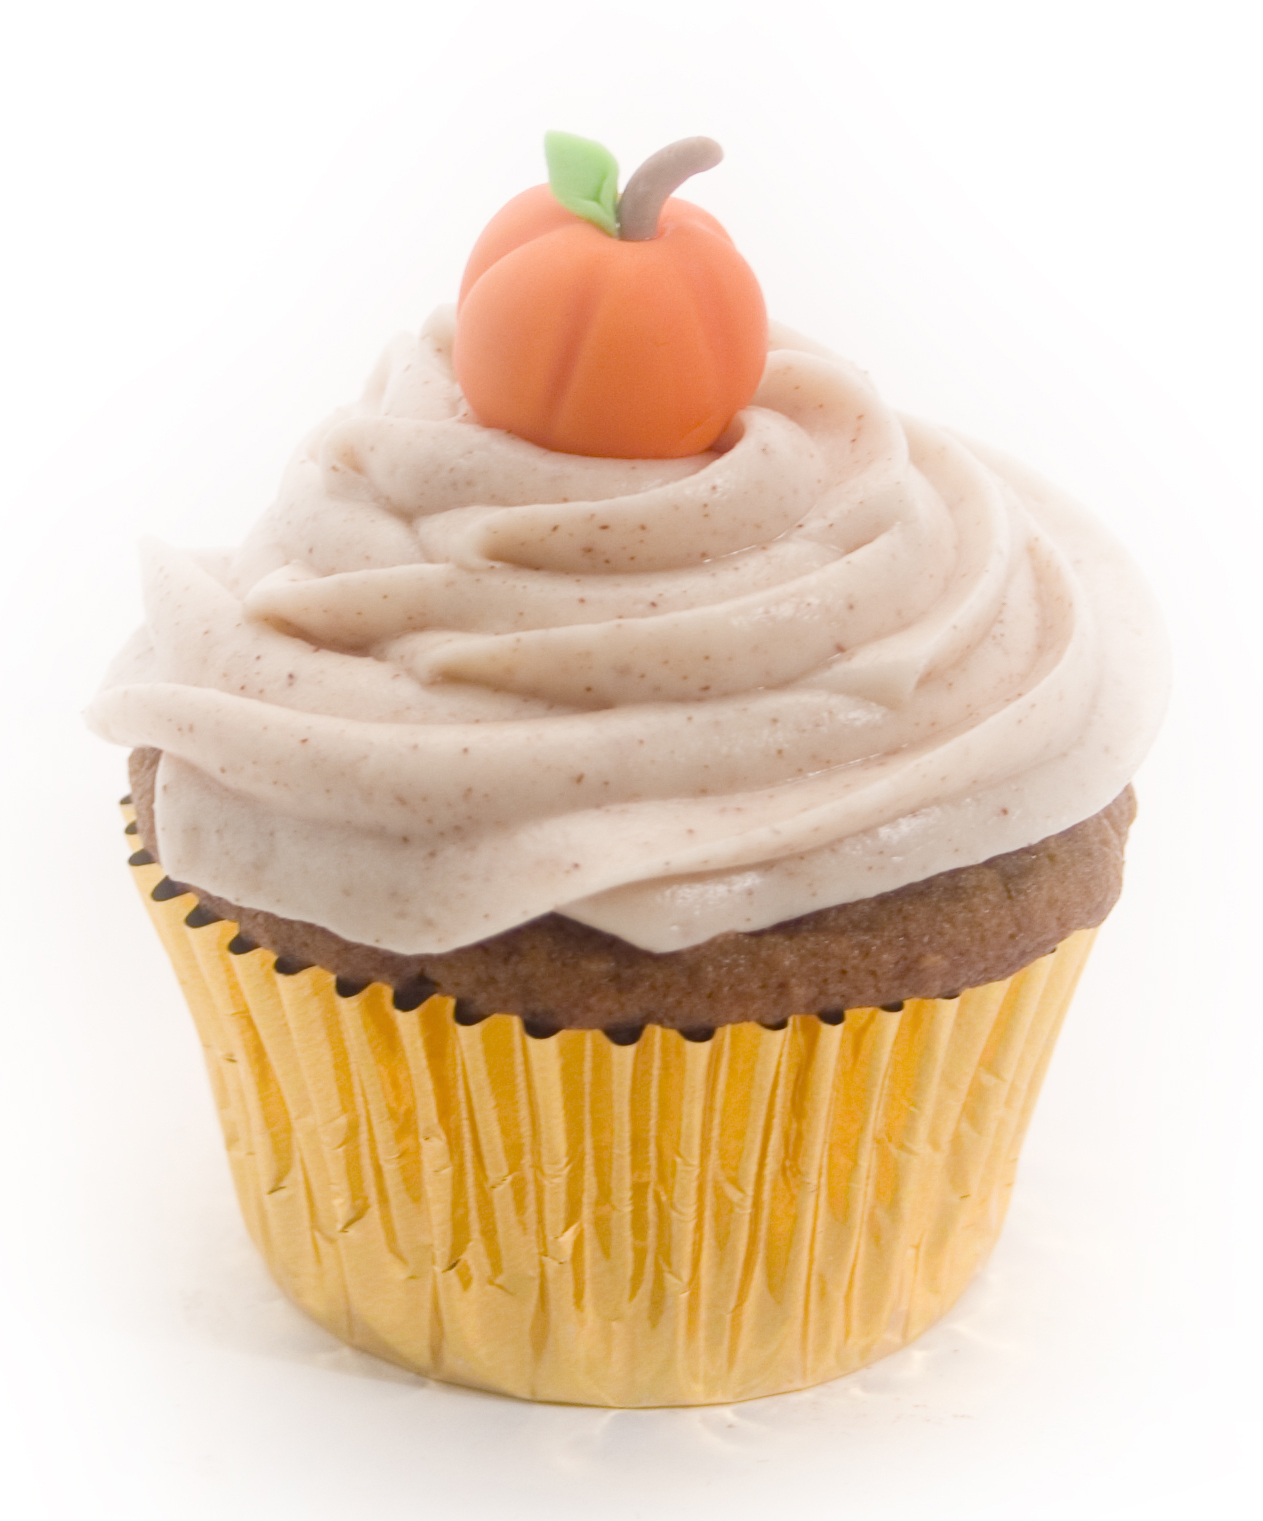 Pumpkin cupcakes with cinnamon cream icing